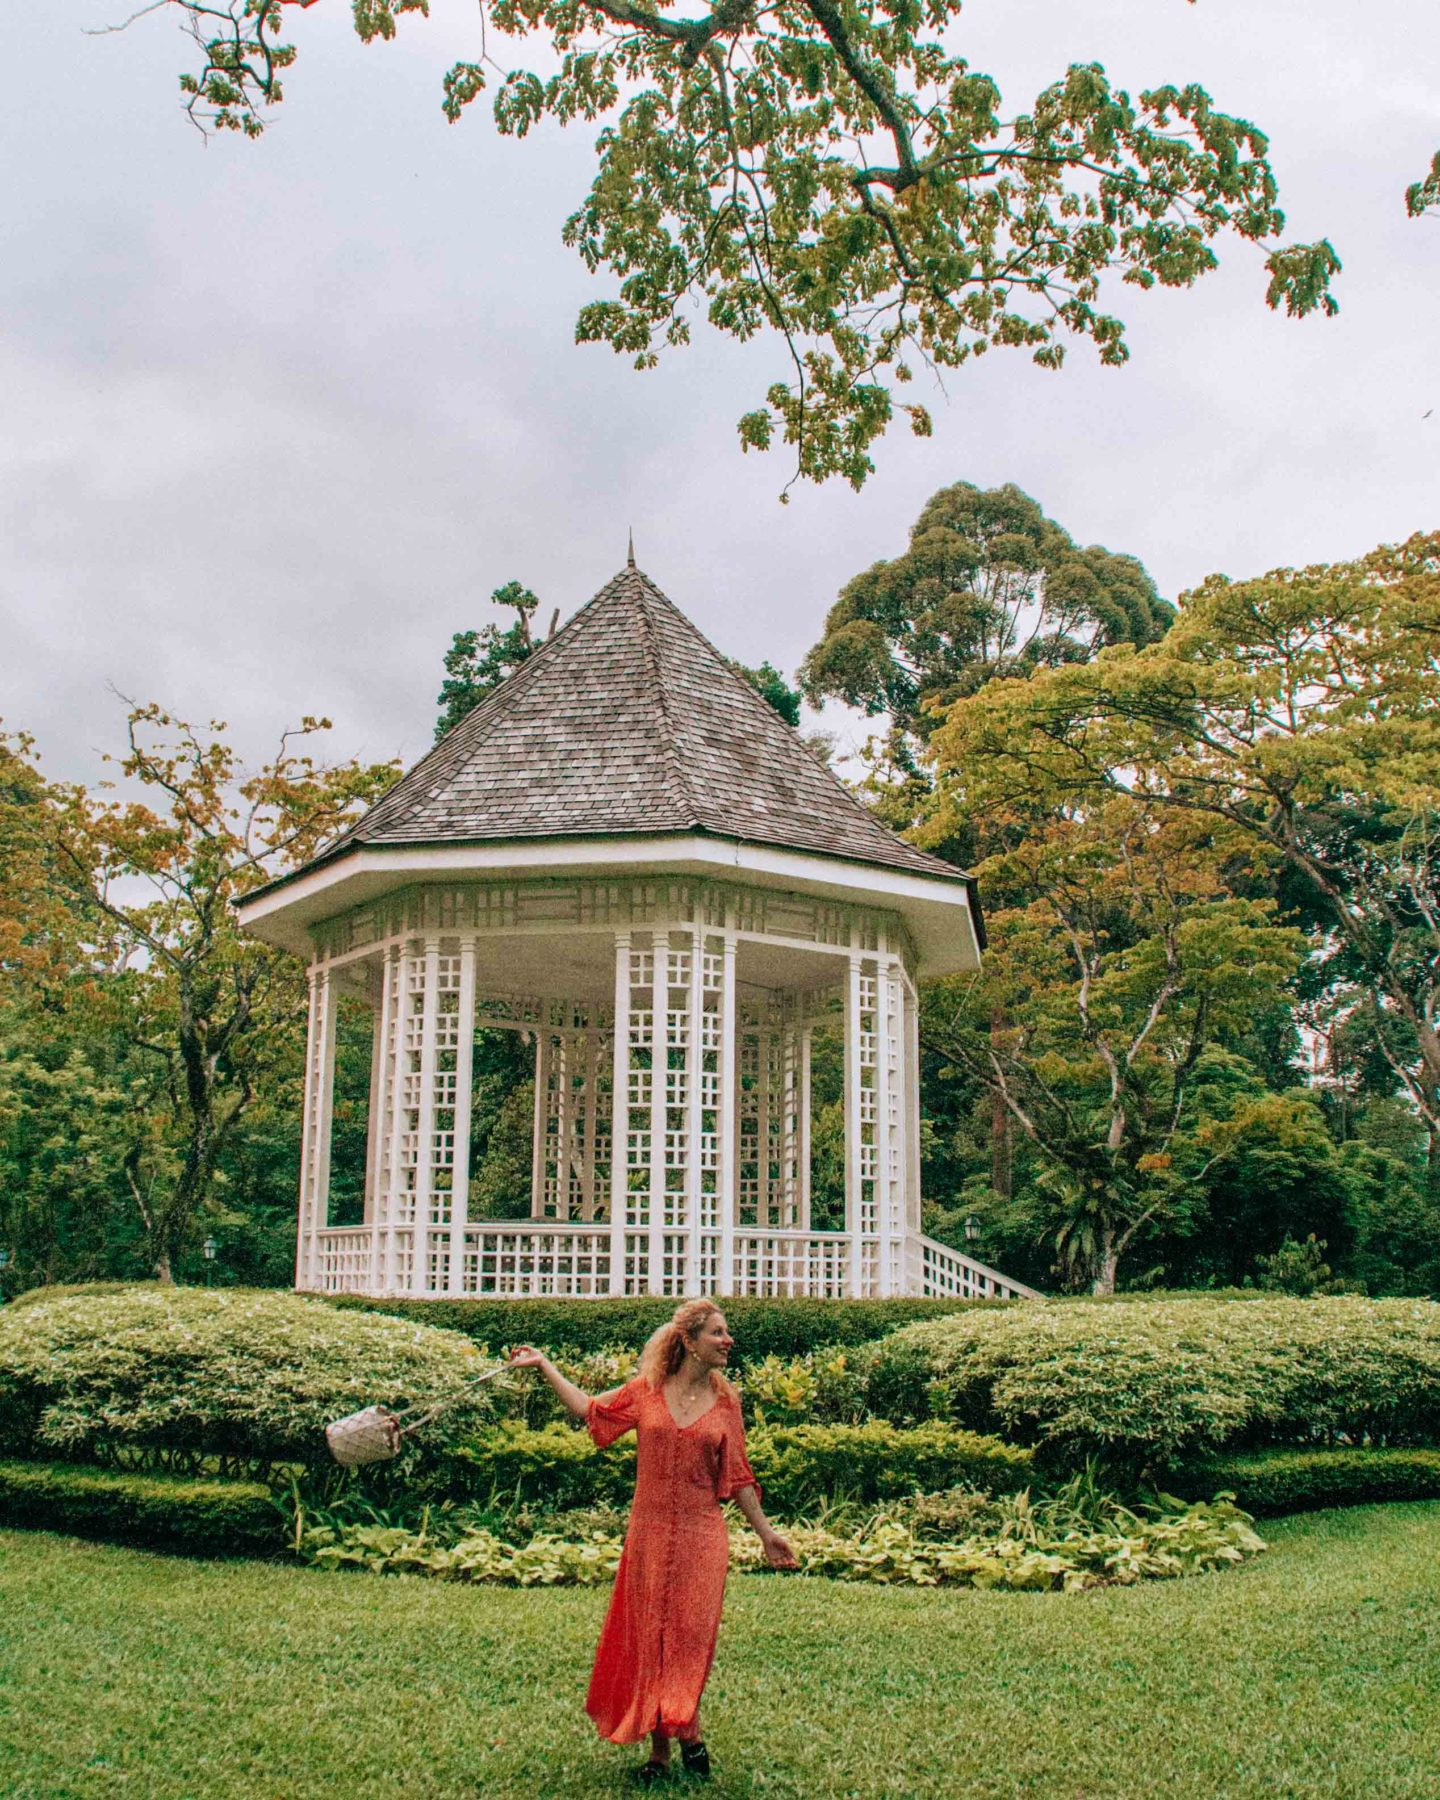 The bandstand photo spot in the Botanic Gardens of Singapore